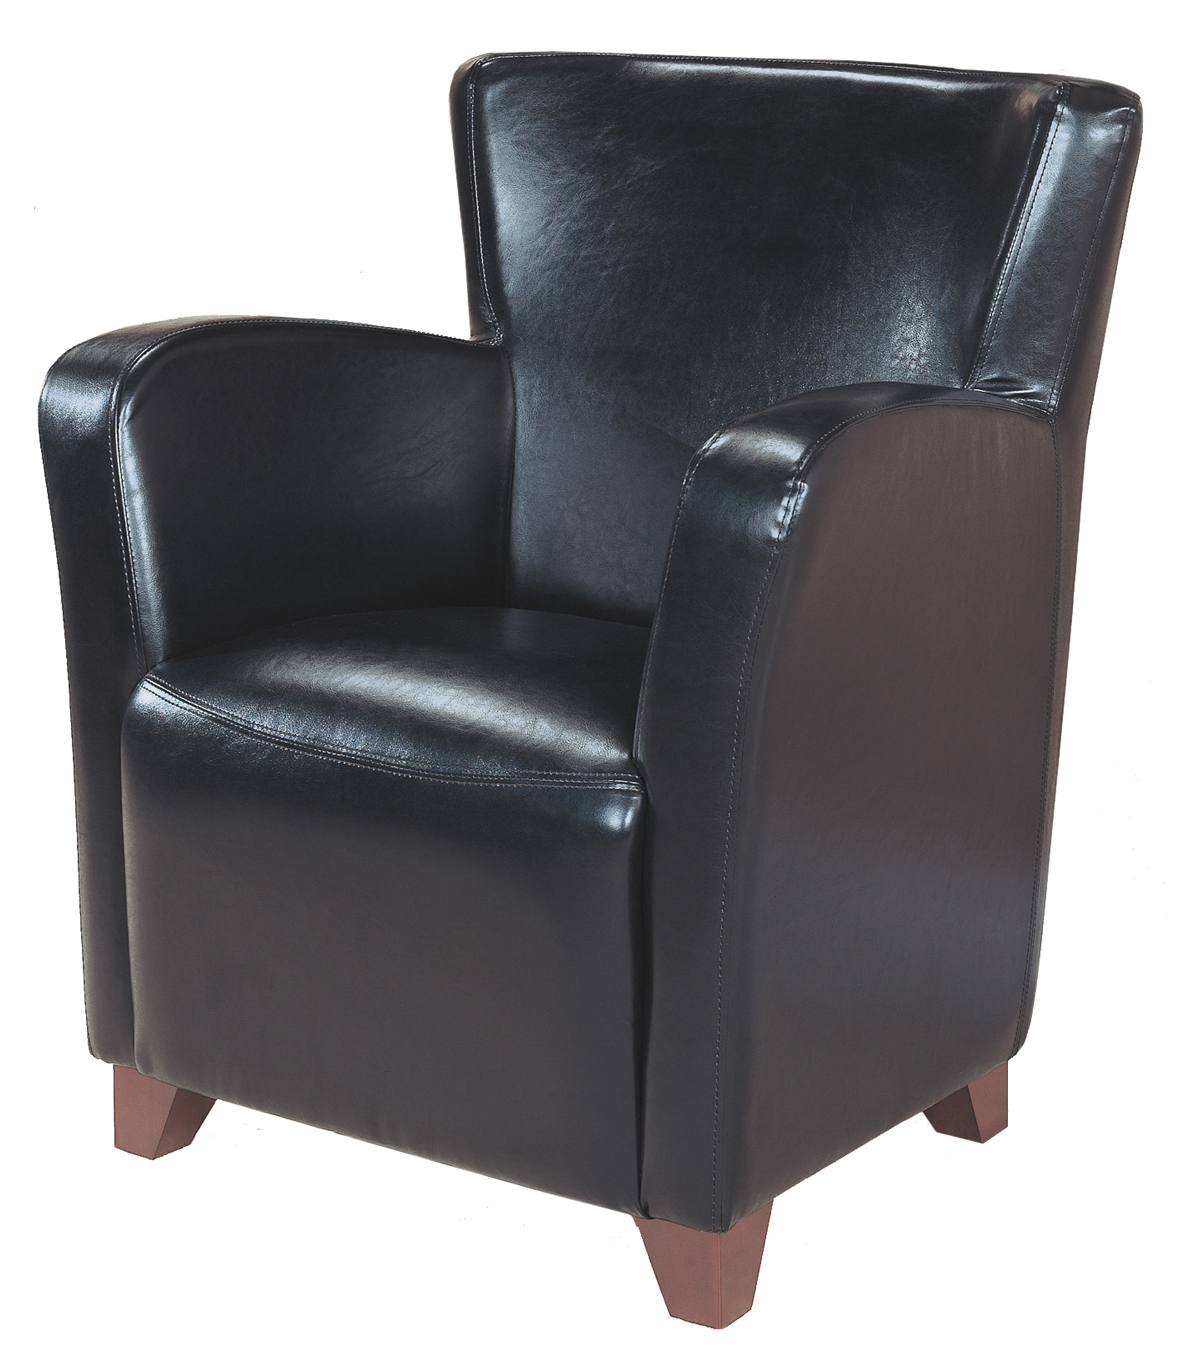 Accent Chair - Black Leather-Look Fabric